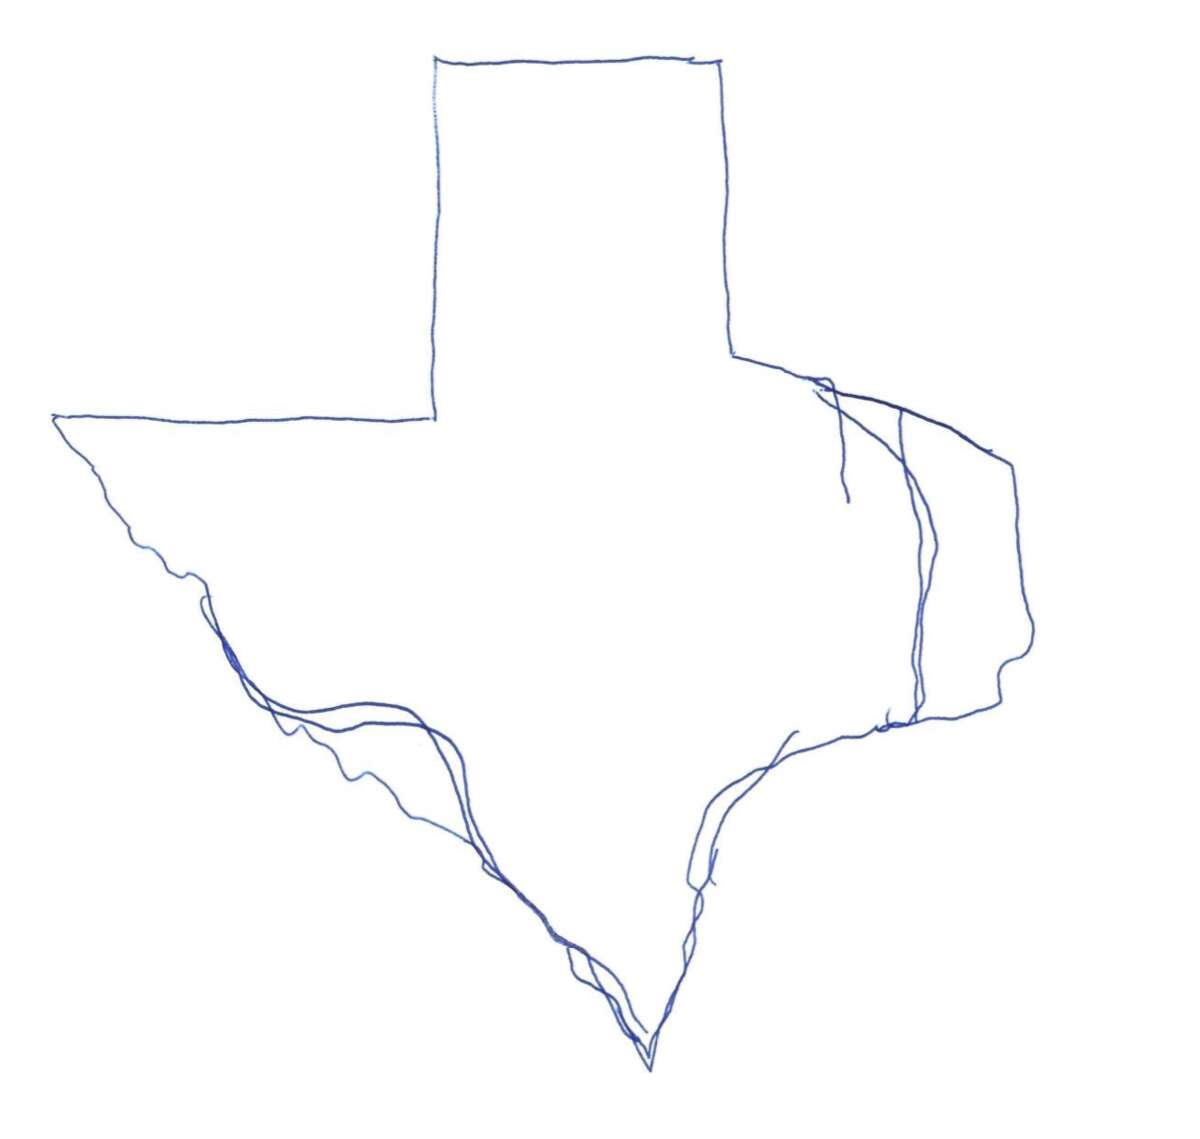 The pretty-accurate-but-it-took-a-couple-tries Texas.